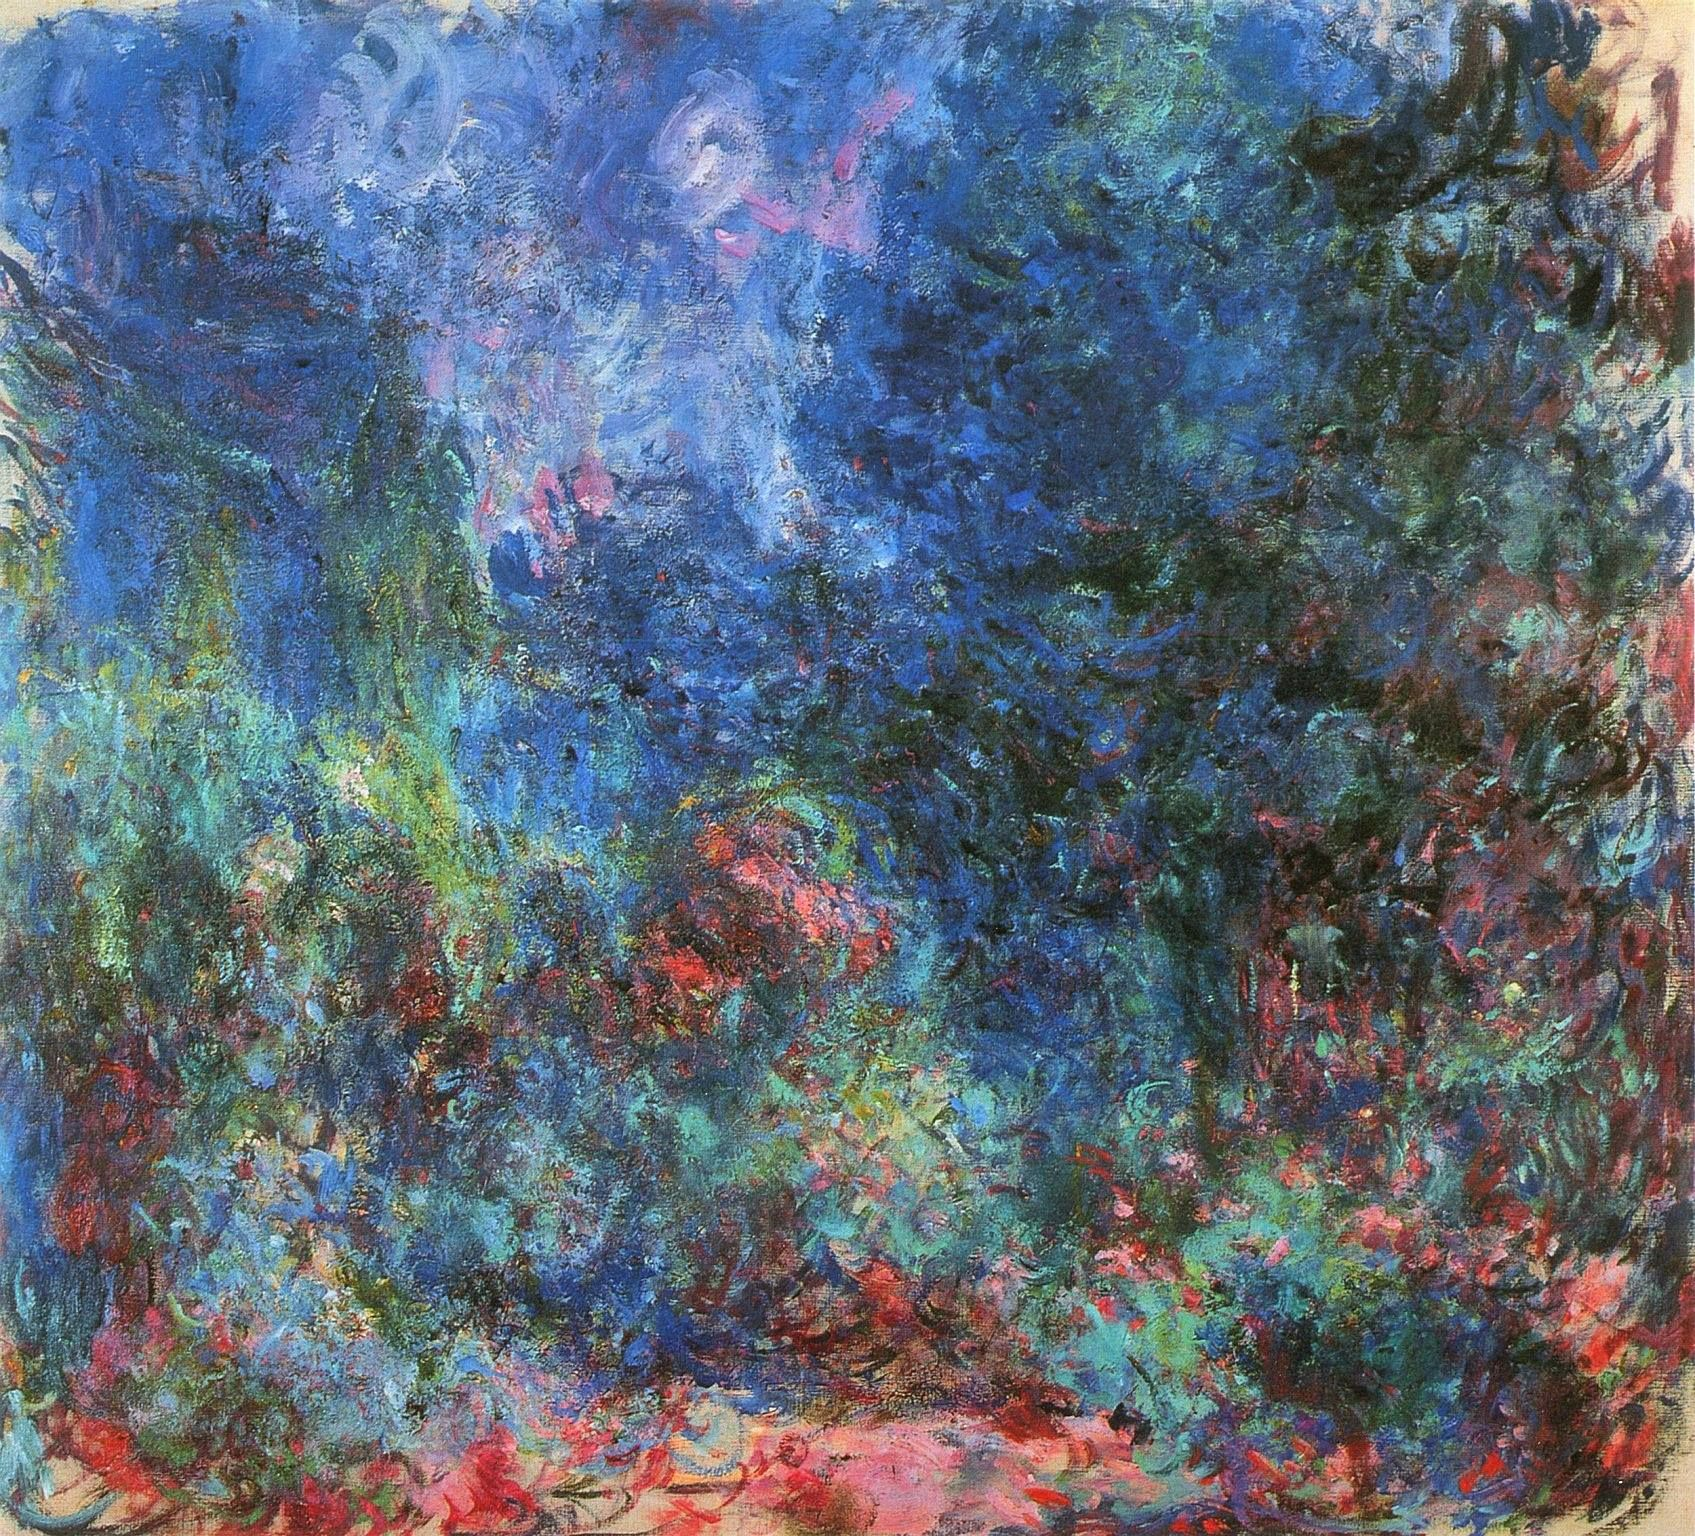 "VERY RARE PAINTING BY CLAUDE MONET ‪#‎Impressionism‬ ‪#‎Art‬ ‪#‎Color‬ ""View of the Rose Garden"" painted in 1924 just two years before he passed."